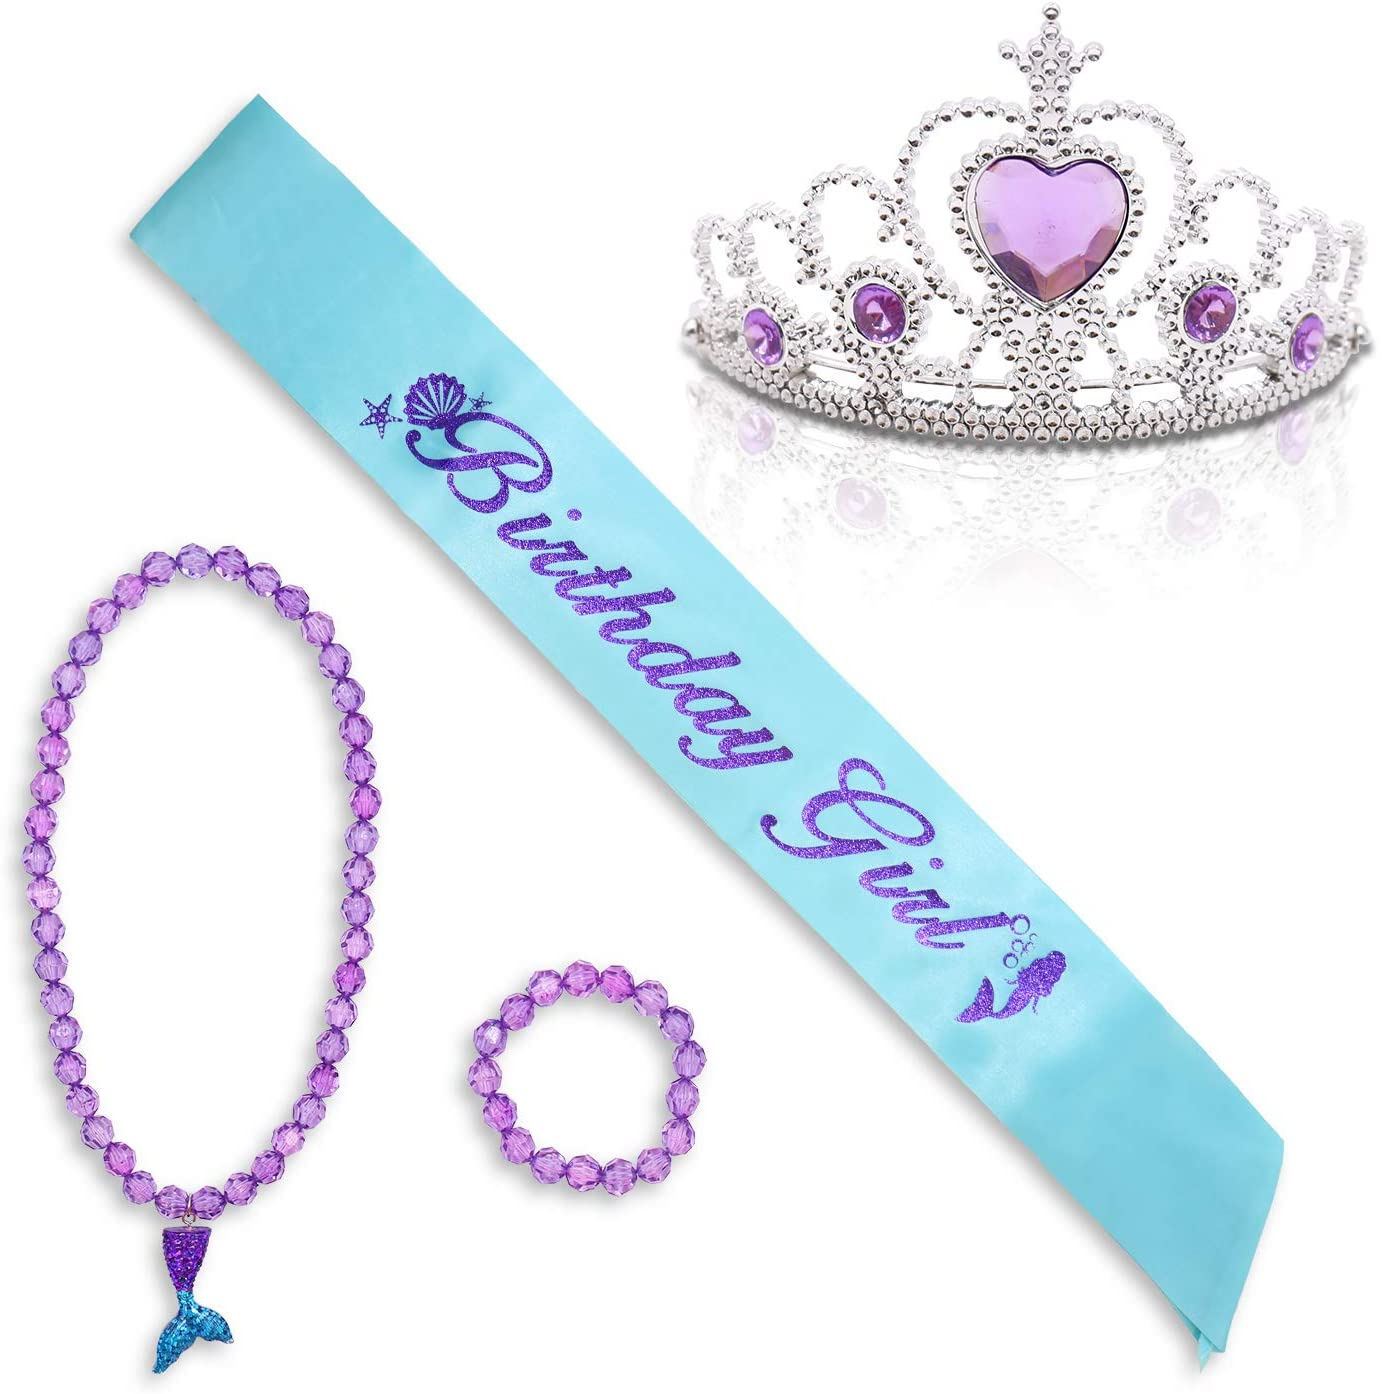 Mermaid Sash Crown Pendant Necklace Bracelet Set for Girl's Birthday Supplies Under The Sea Girls Tiara Dress Up Party Favors